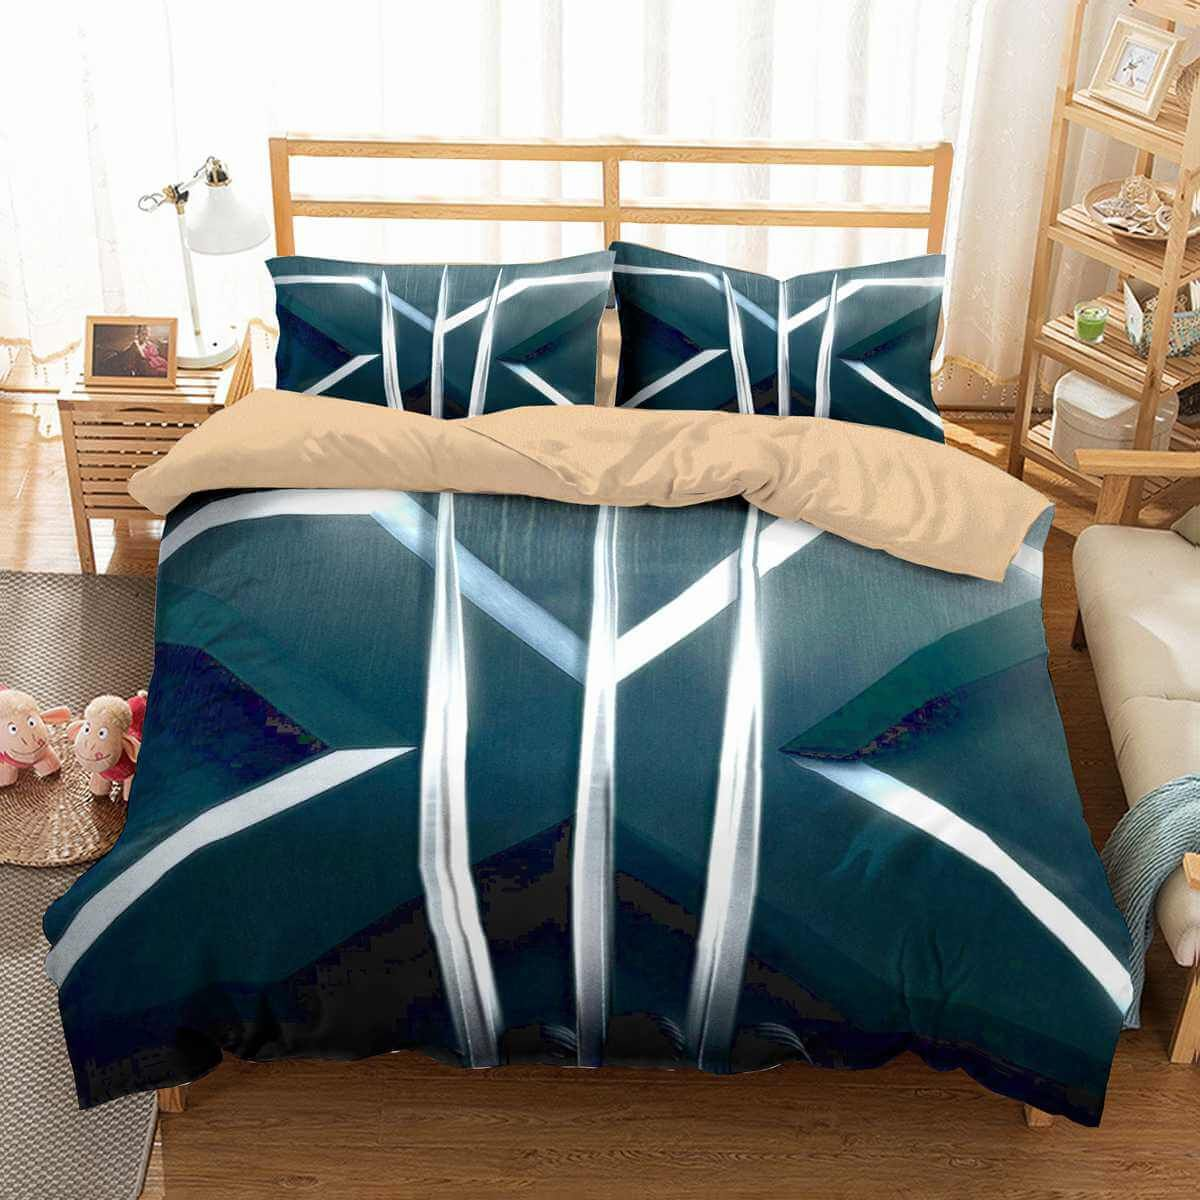 3d Customize X Men Bedding Set Duvet Cover Set Bedroom Set